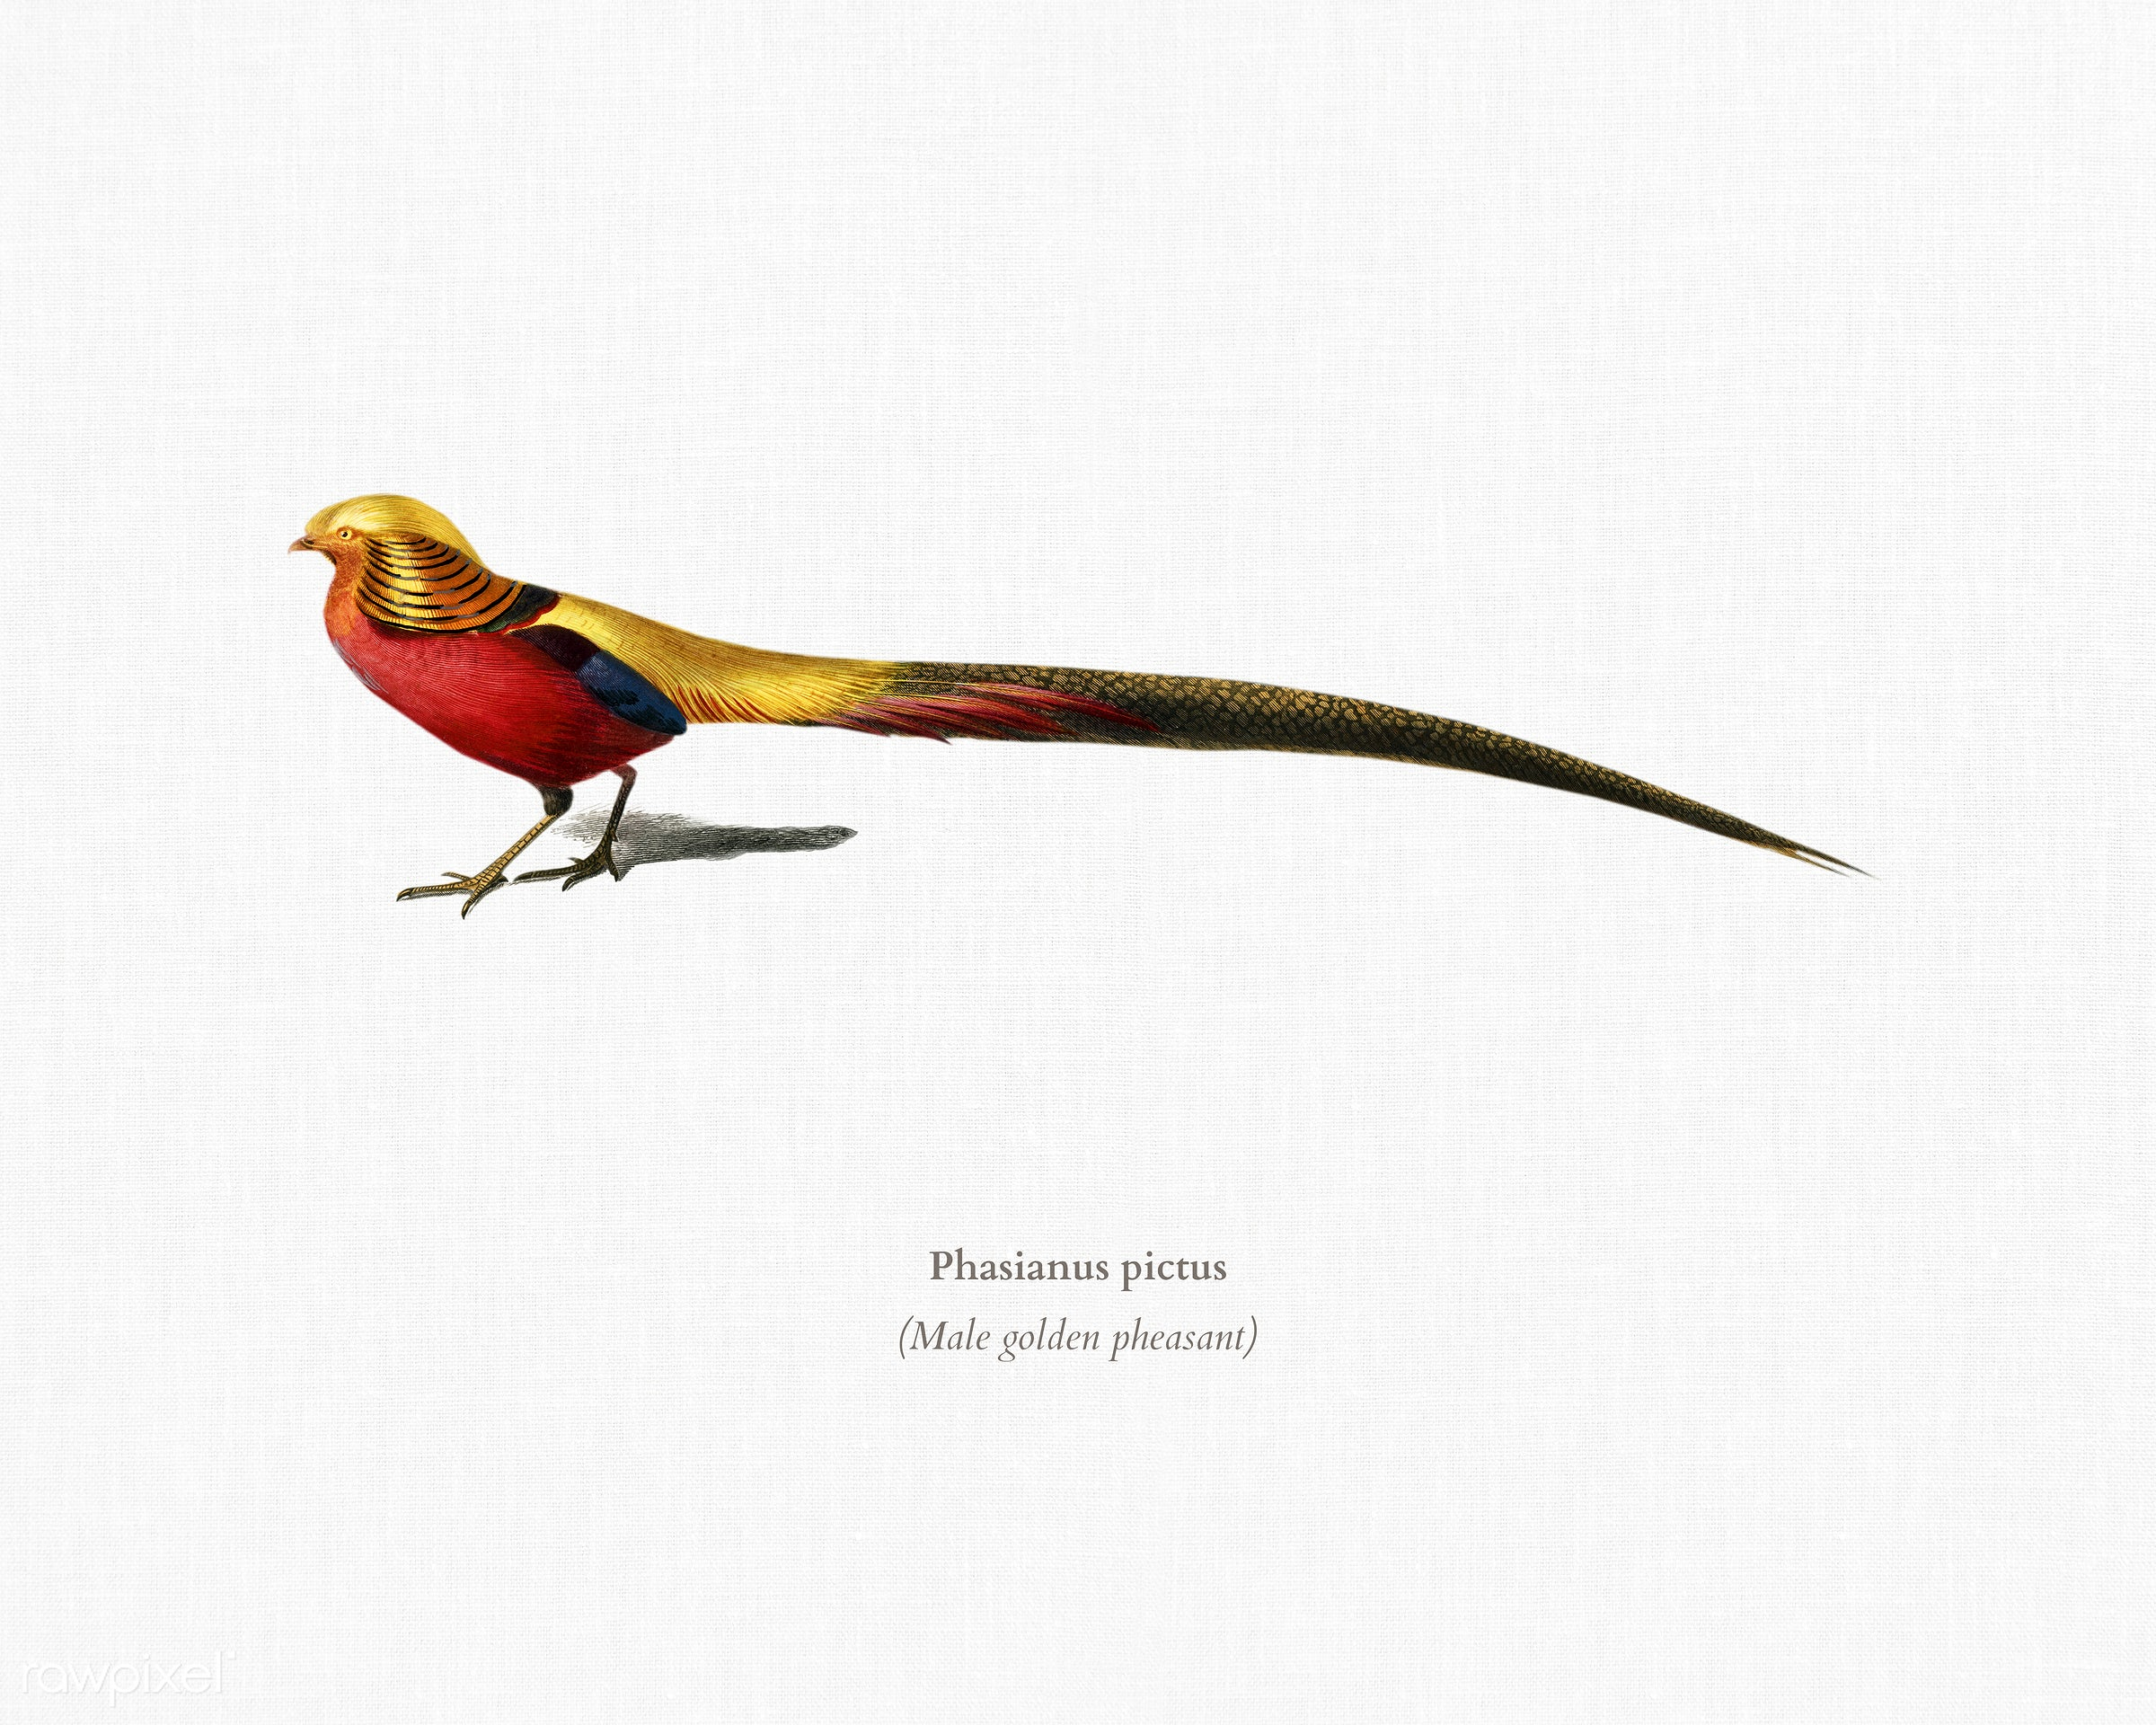 Male golden pheasant (Phasianus pictus) illustrated by Charles Dessalines D' Orbigny (1806-1876). Digitally enhanced...